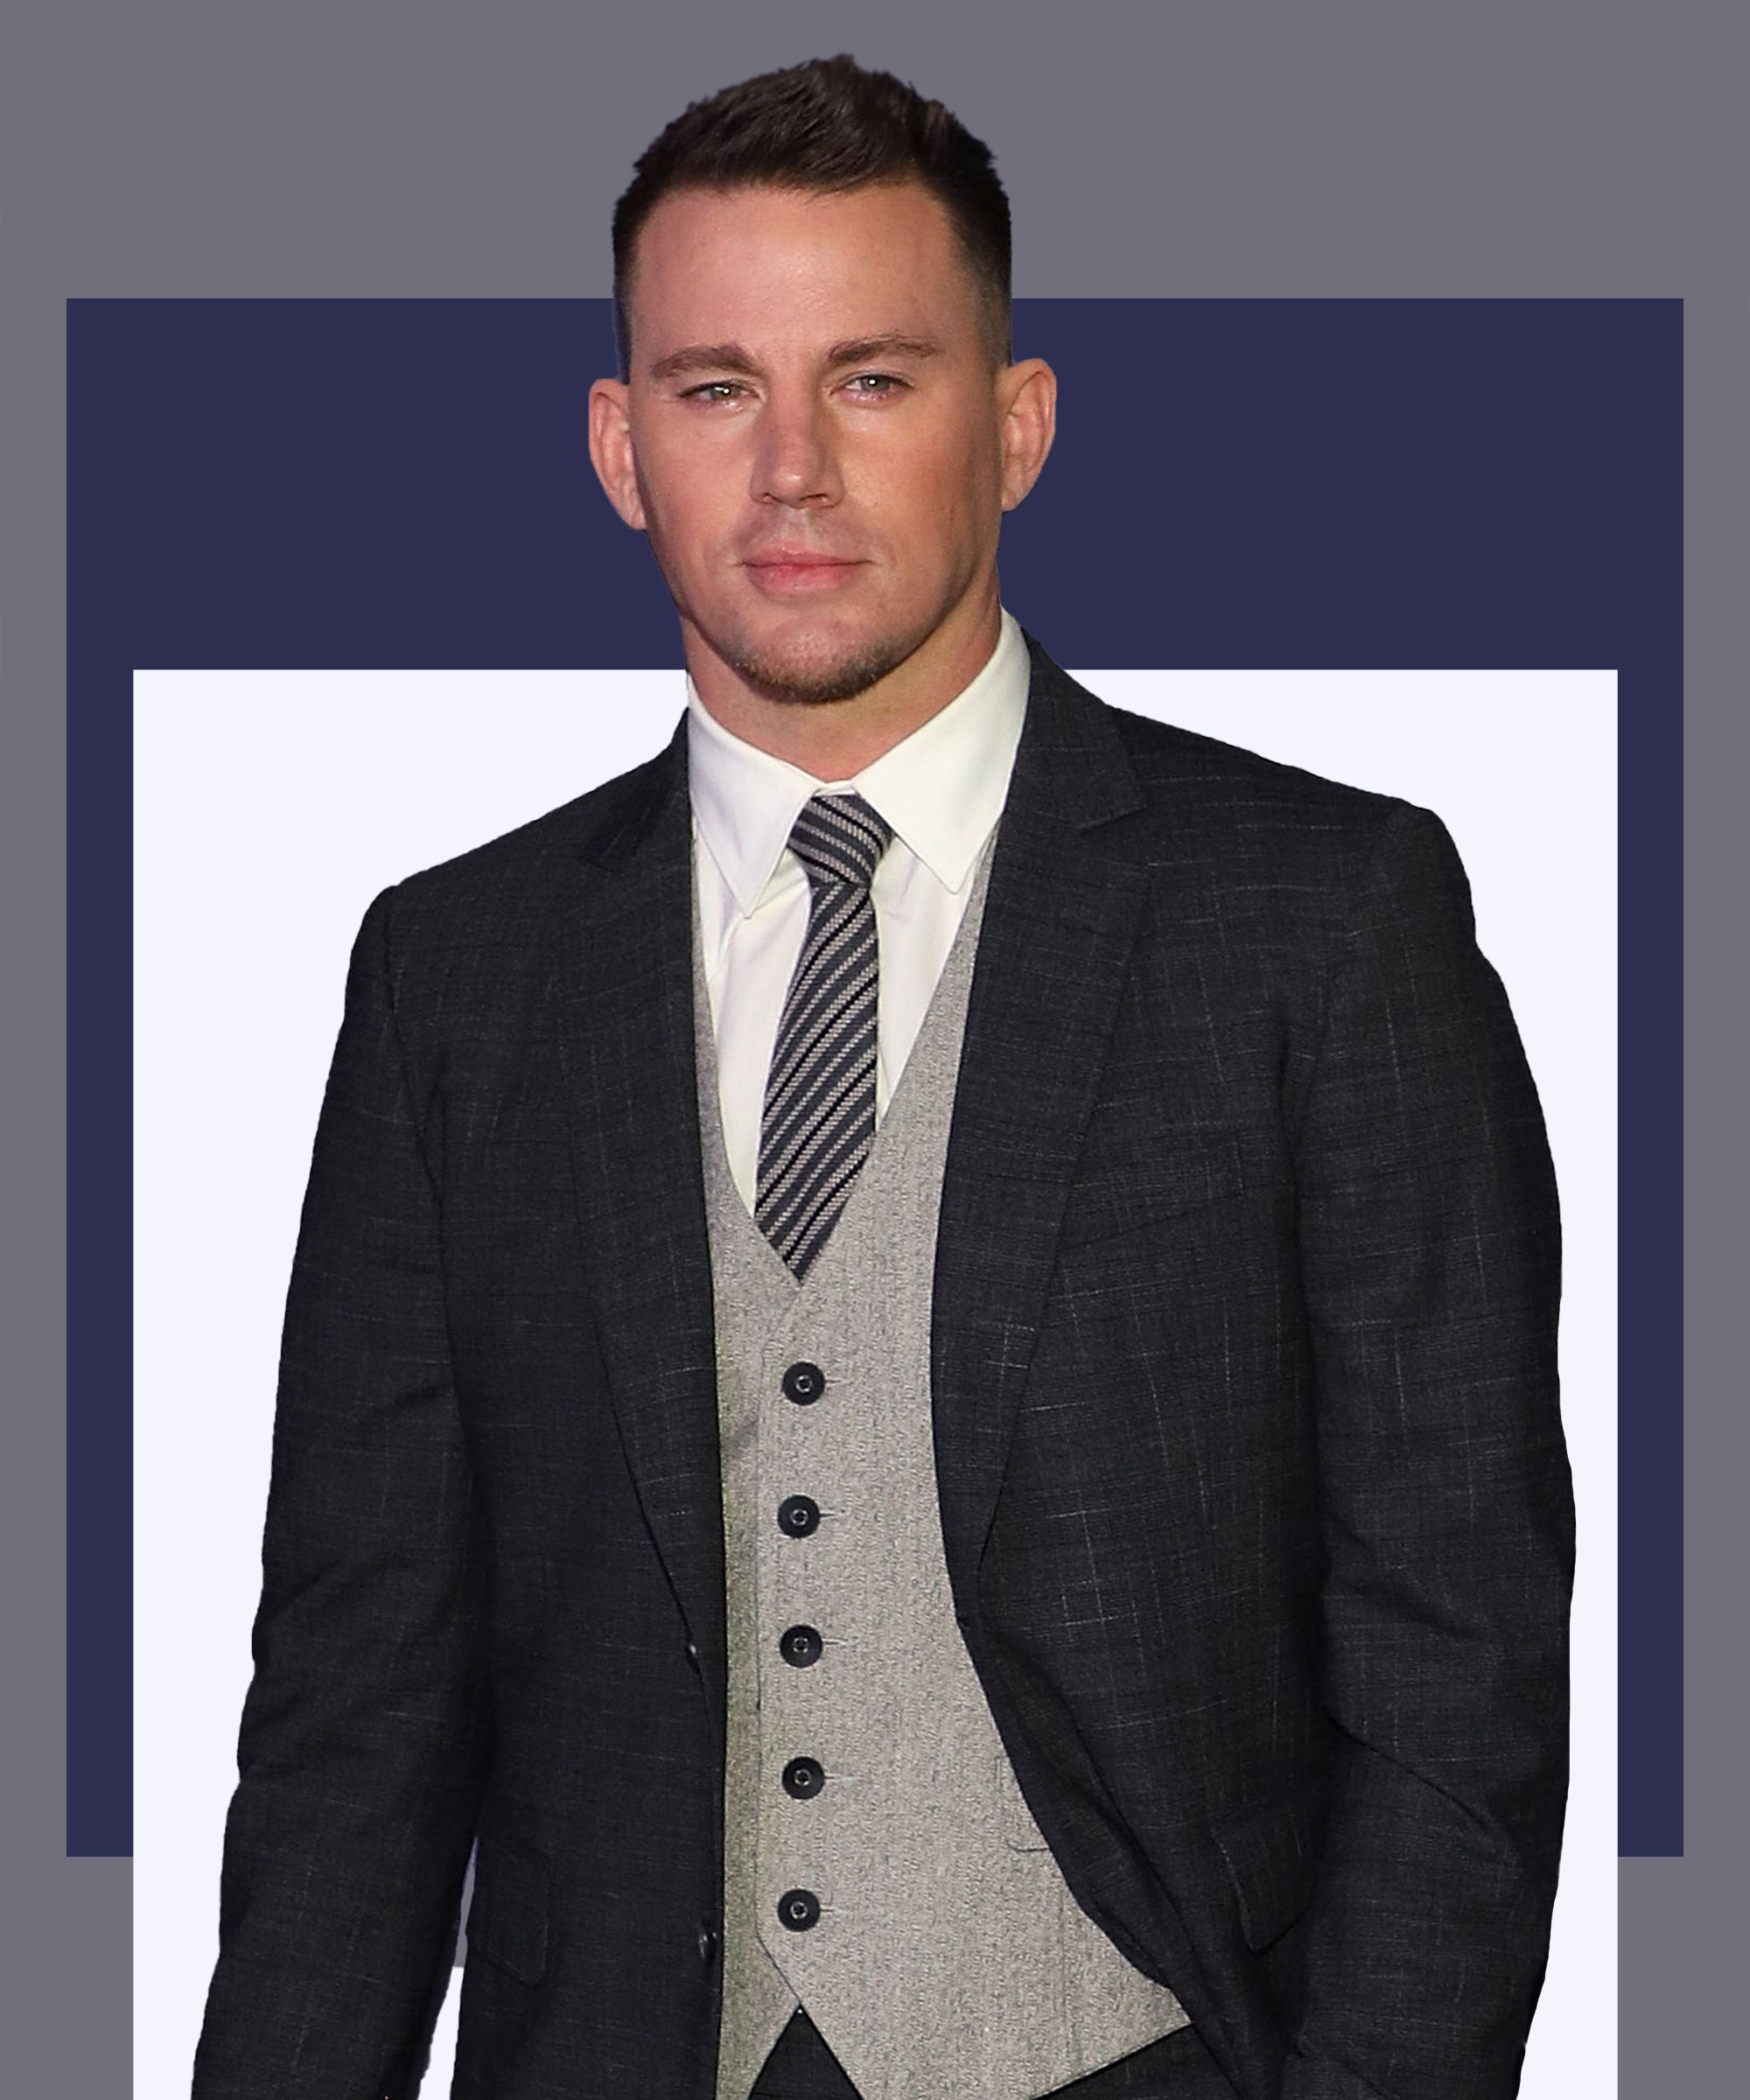 Channing Tatum Is Obsessed With An App That's Freaking Everyone Out